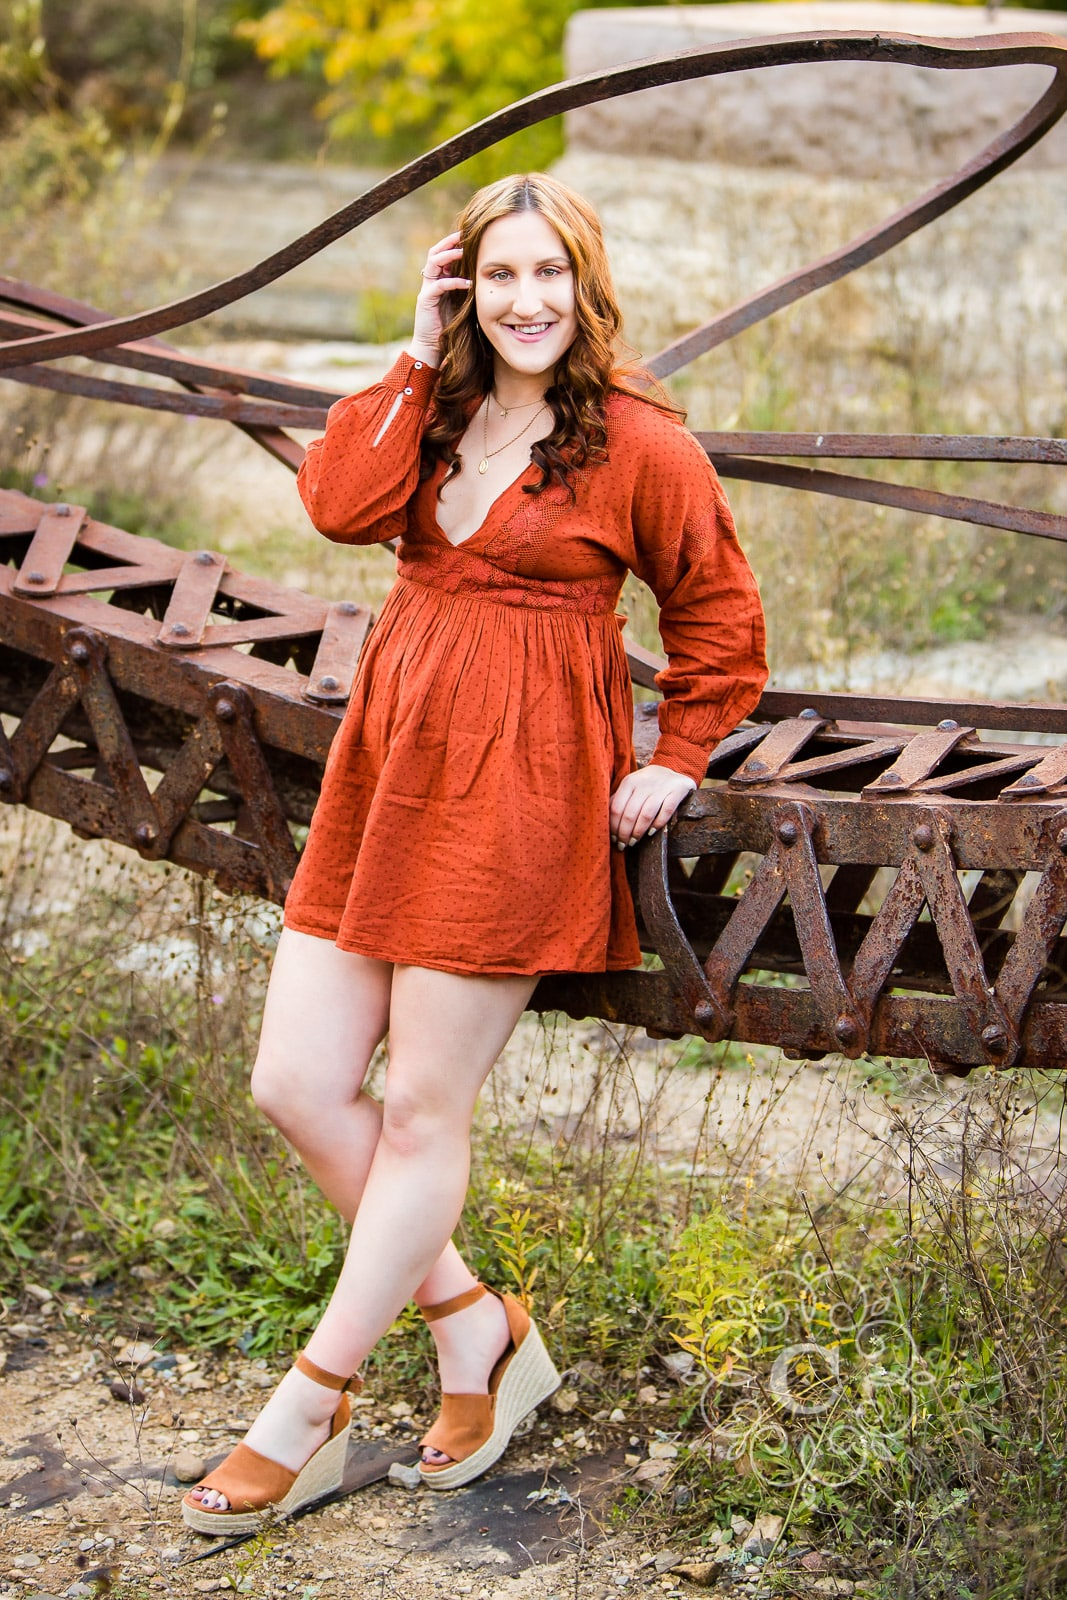 Mill Ruins Park Senior Portrait Photo